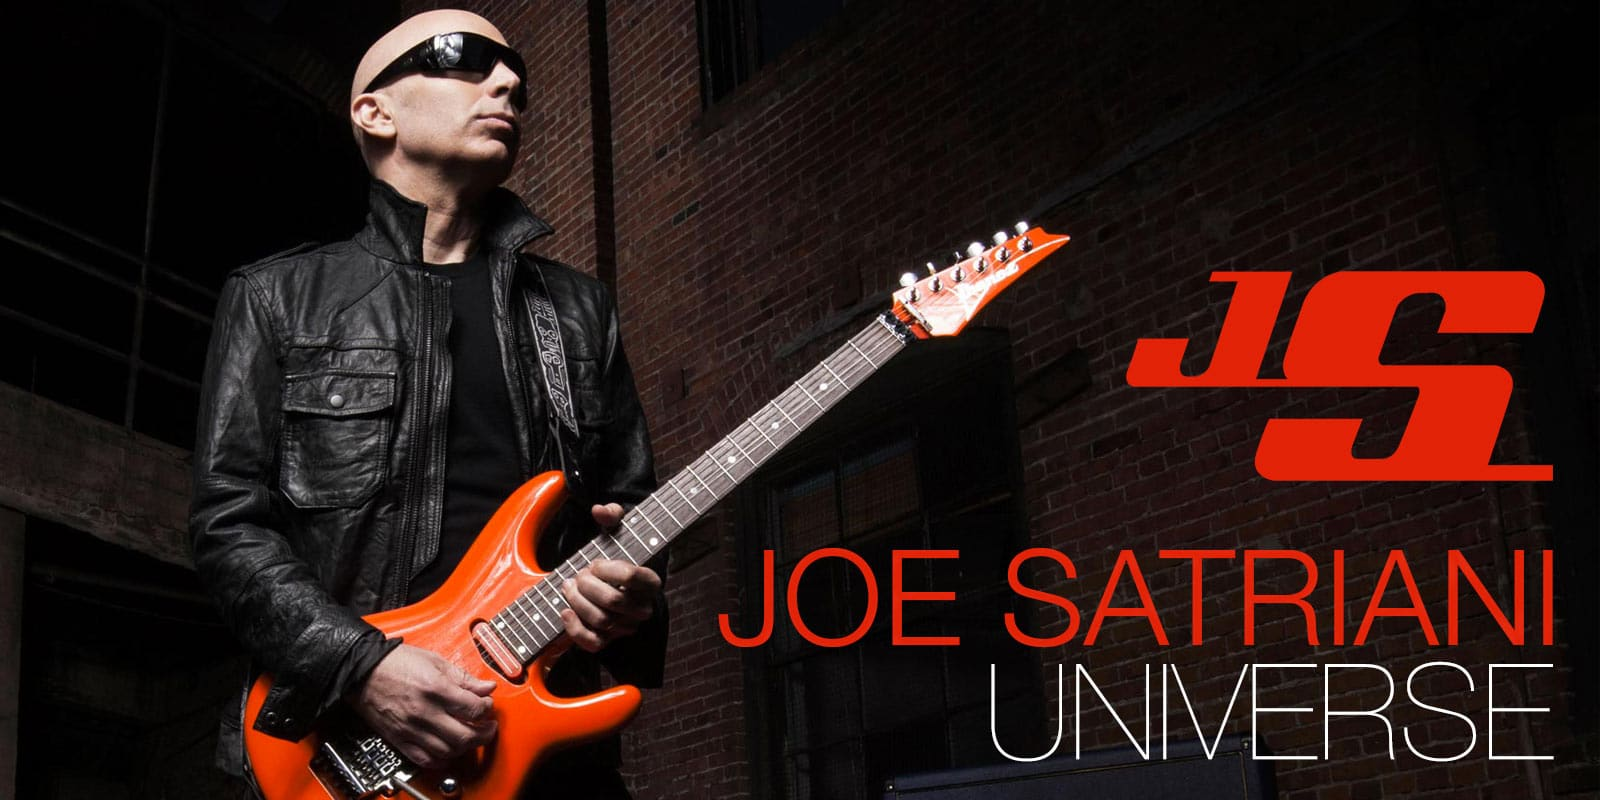 Joe Satriani Universe 2014 launching